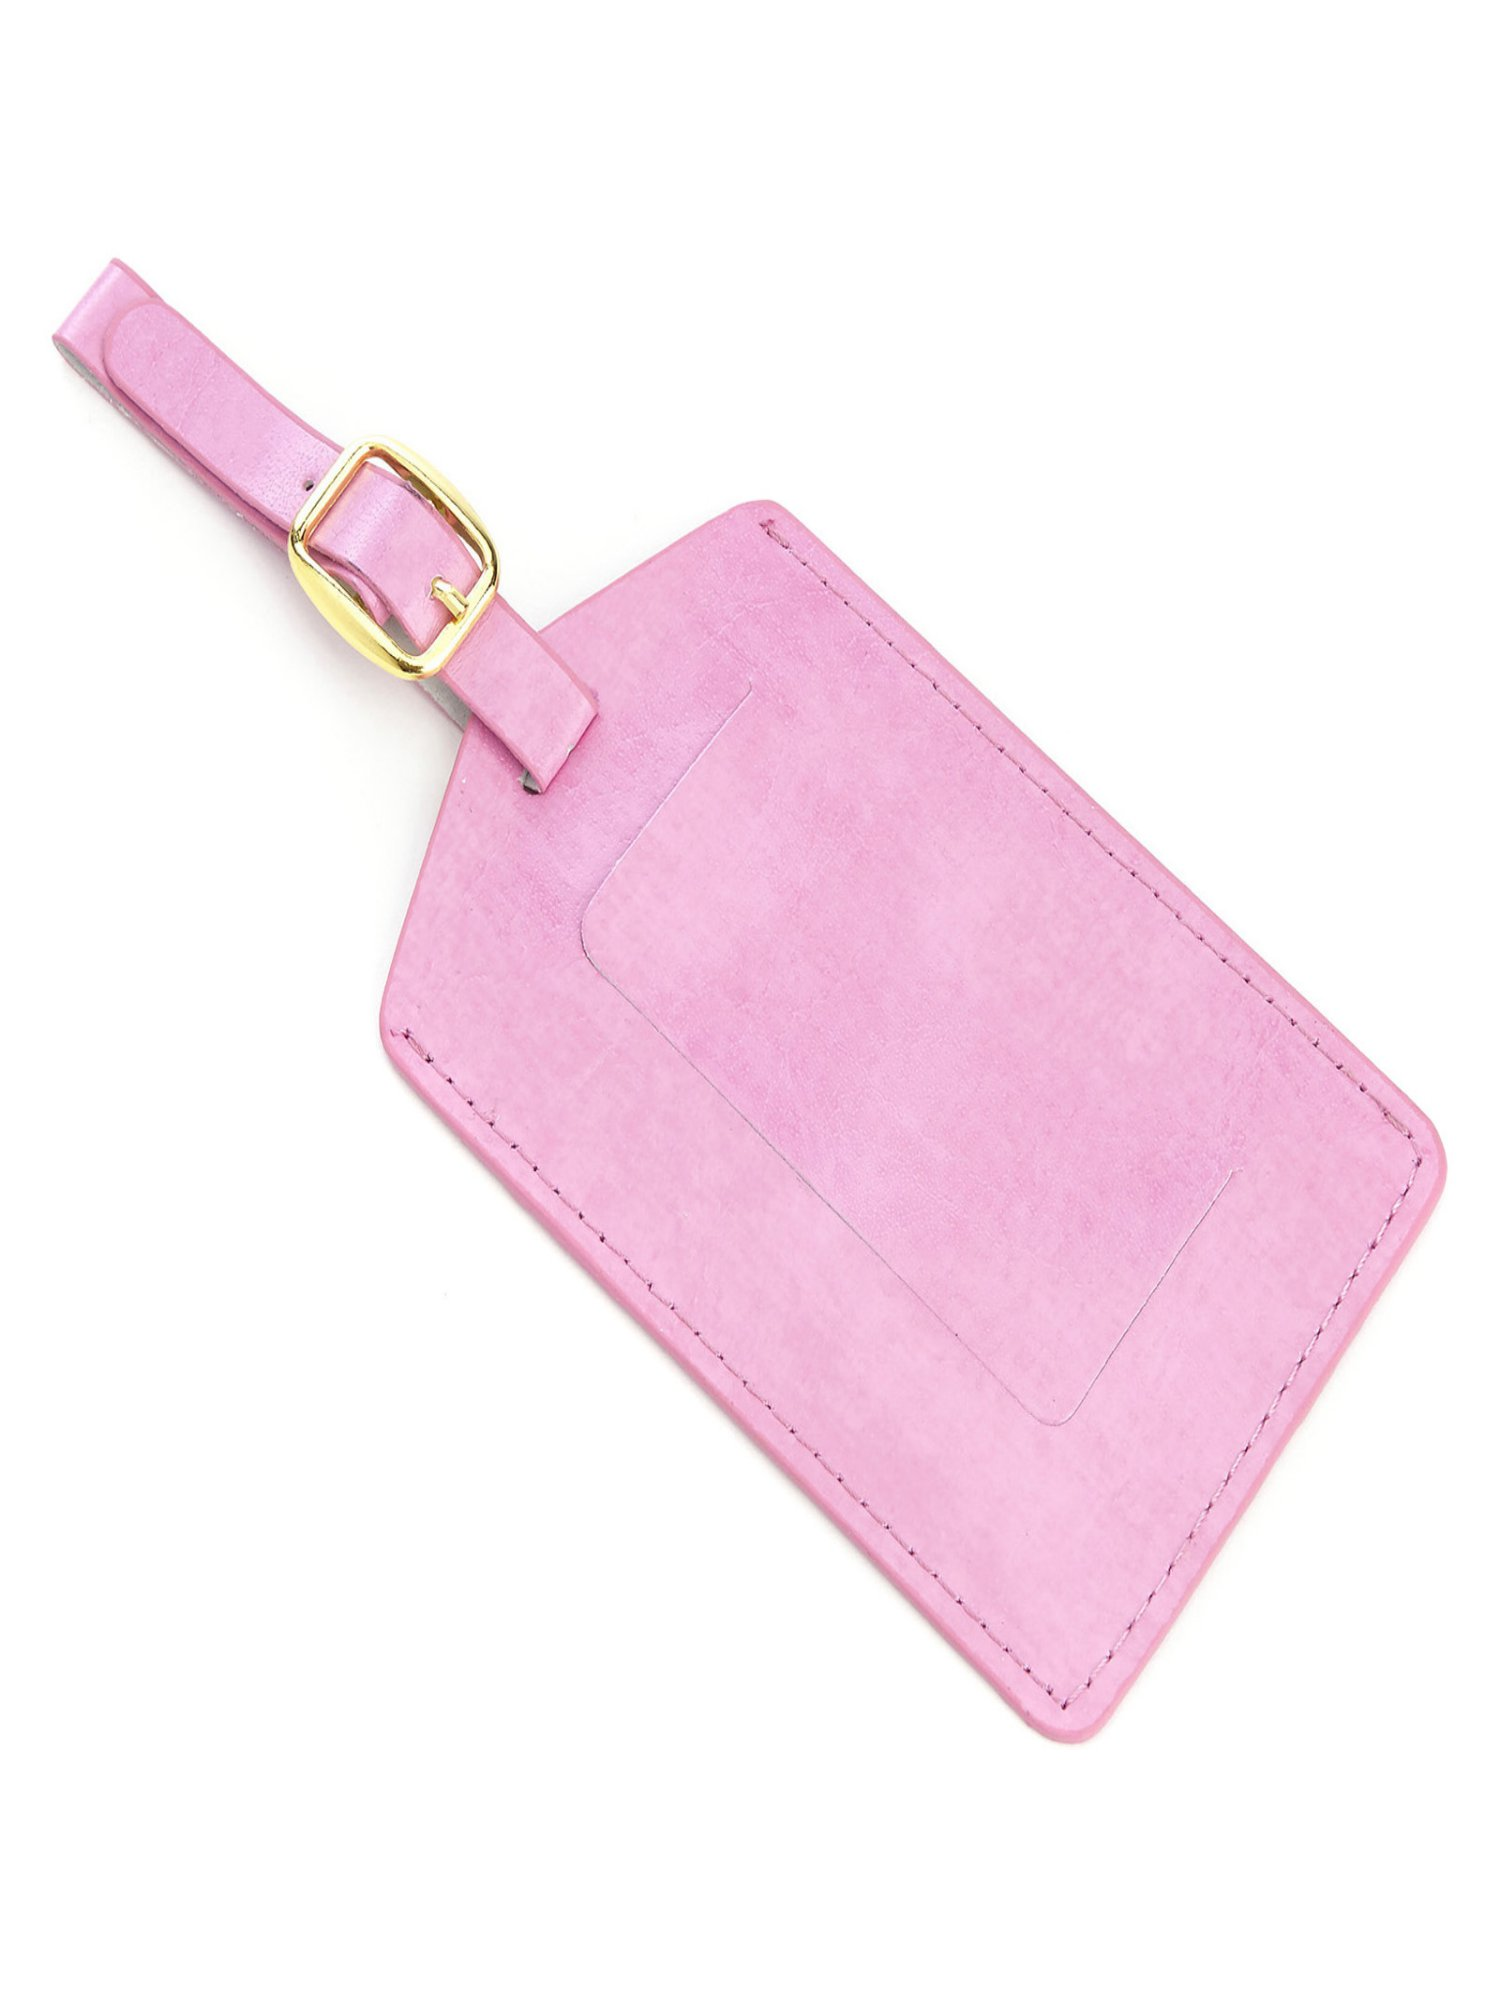 Luggage Tag Travel ID with Privacy Flap in Genuine Leather